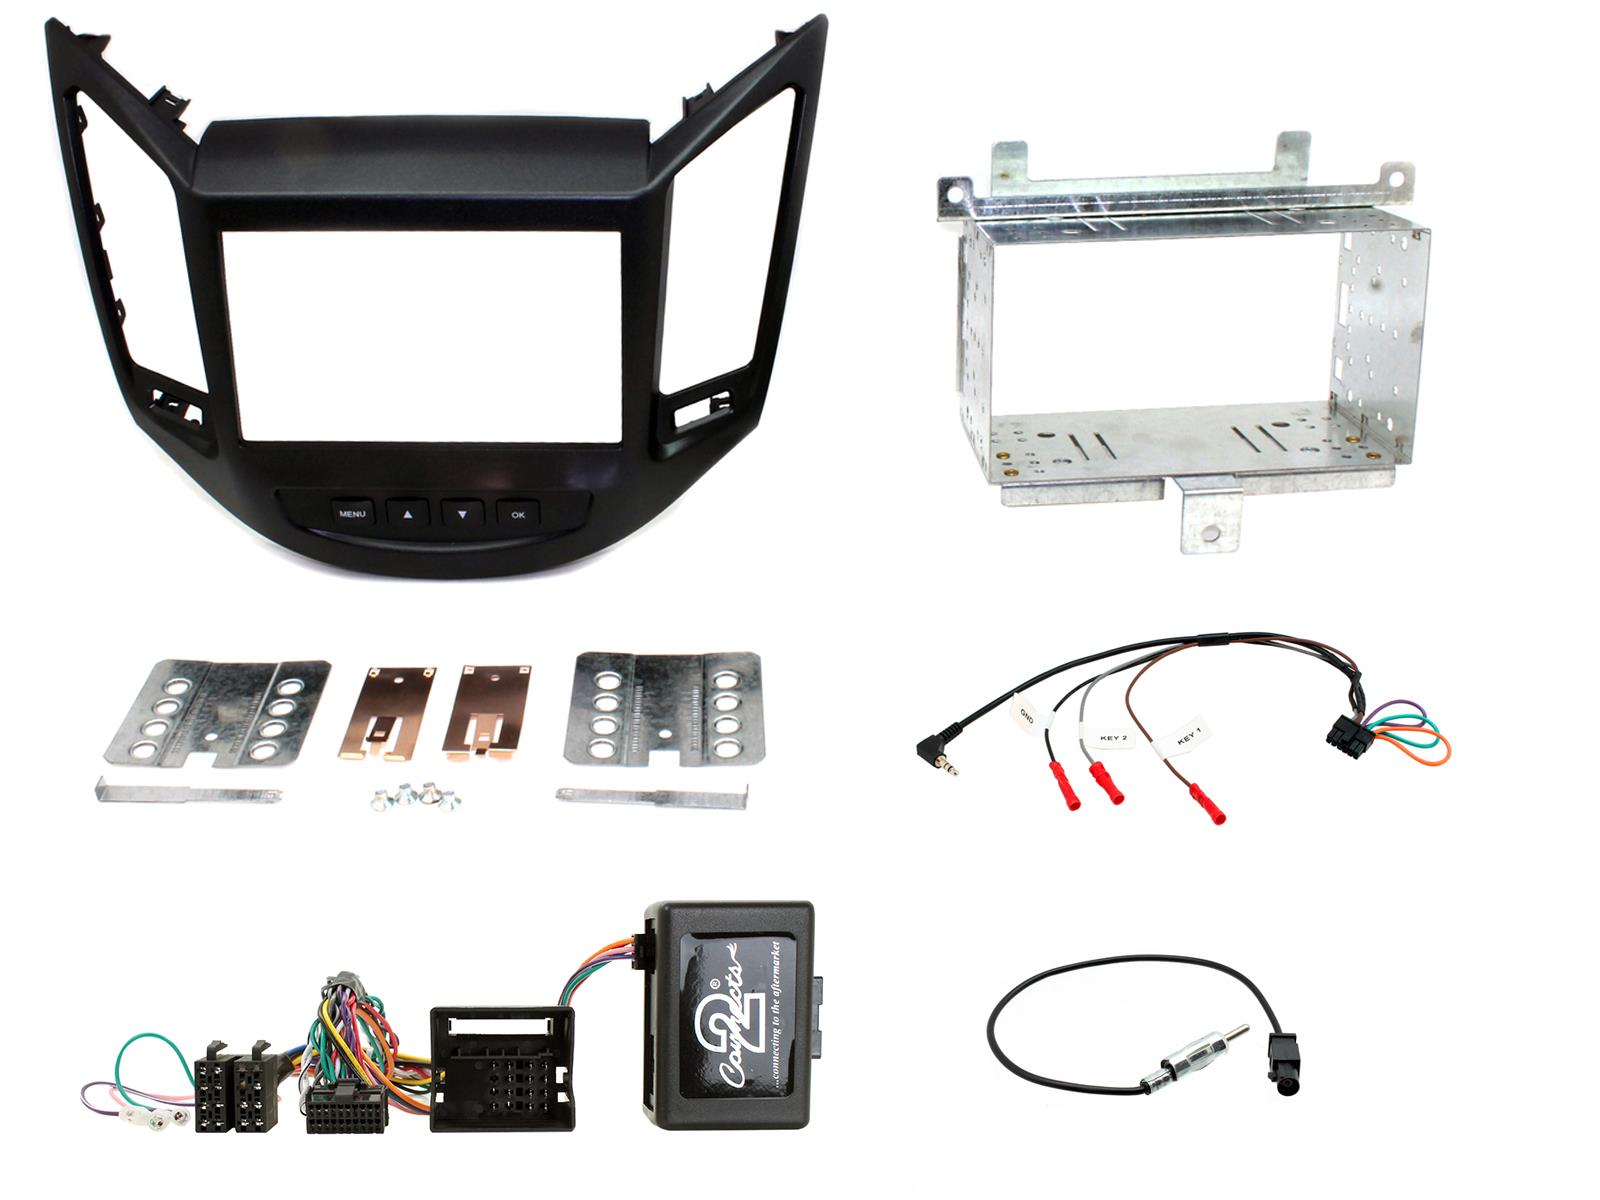 Connects2 CTKCV03 Chevrolet Beat 2010-12 Complete Double Din Fascia Fitting Kit